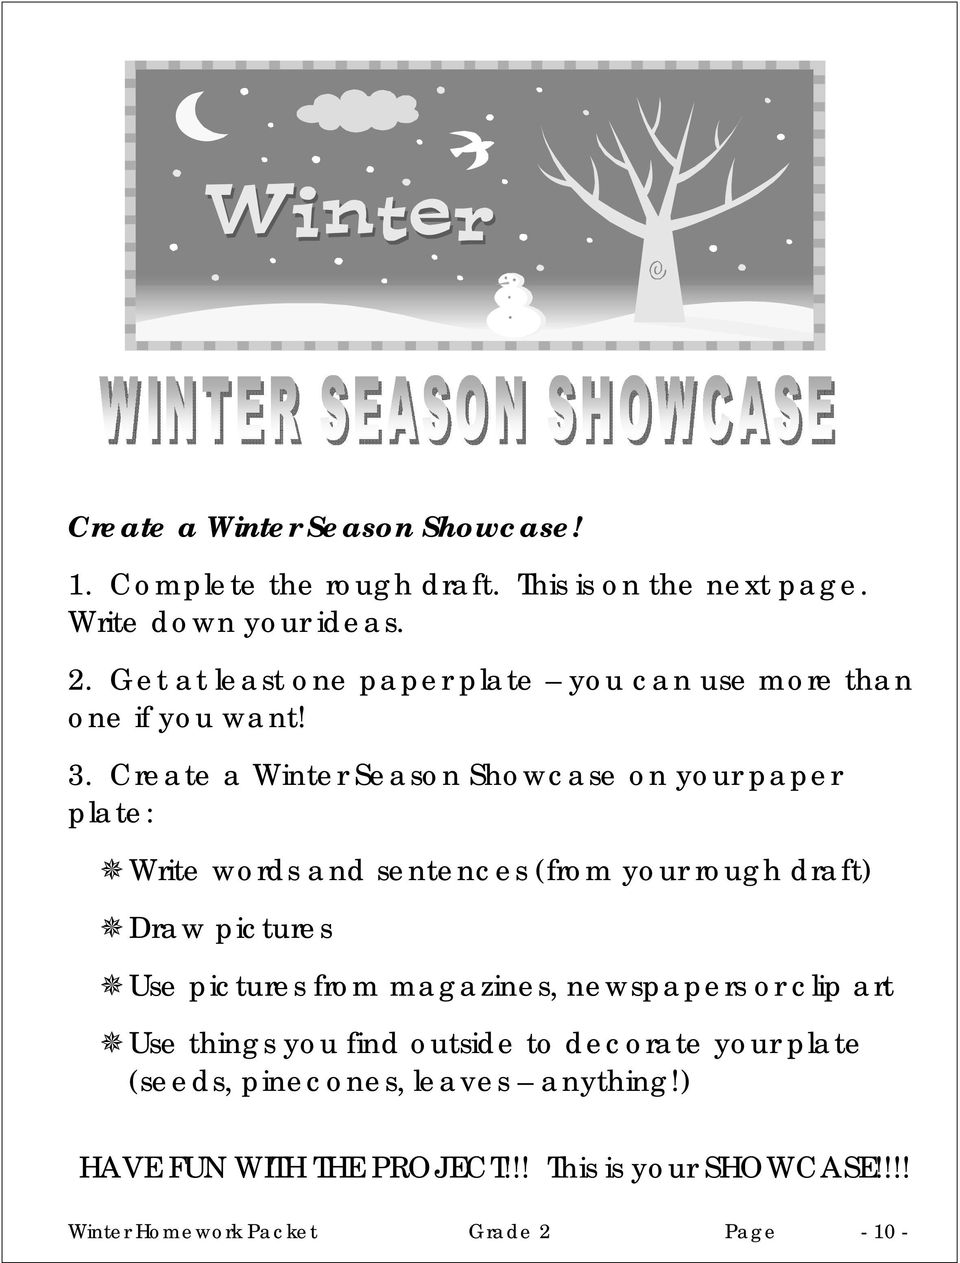 Create a Winter Season Showcase on your paper plate: Write words and sentences (from your rough draft) Draw pictures Use pictures from